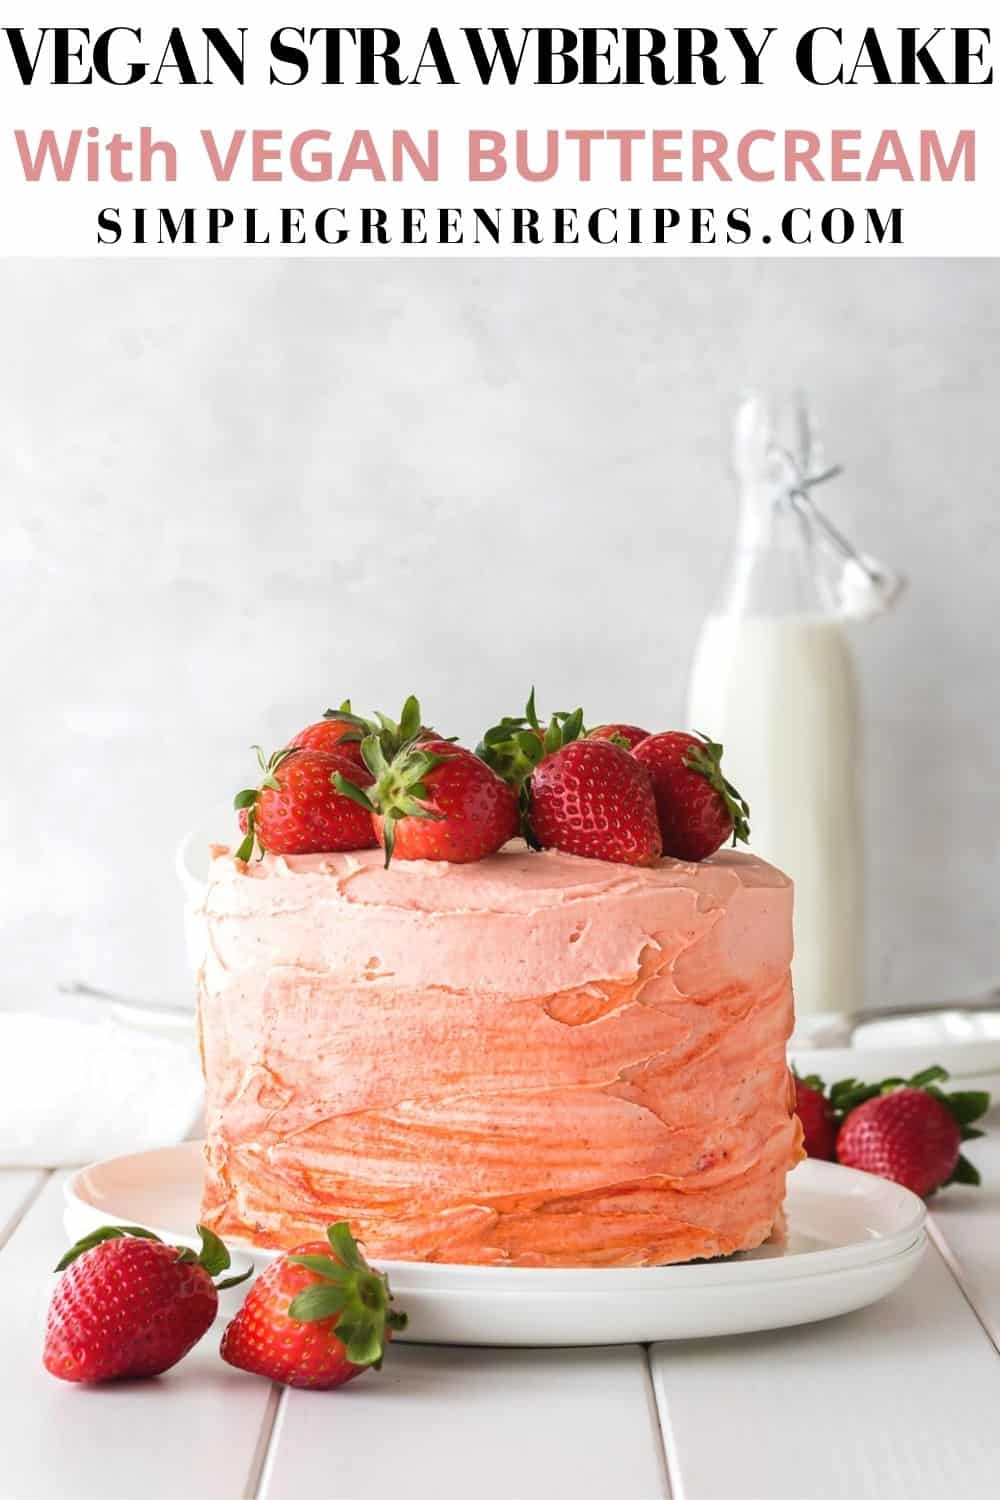 Strawberry cake on a white plate, topped with fresh strawberries, in front of a milk bottle.